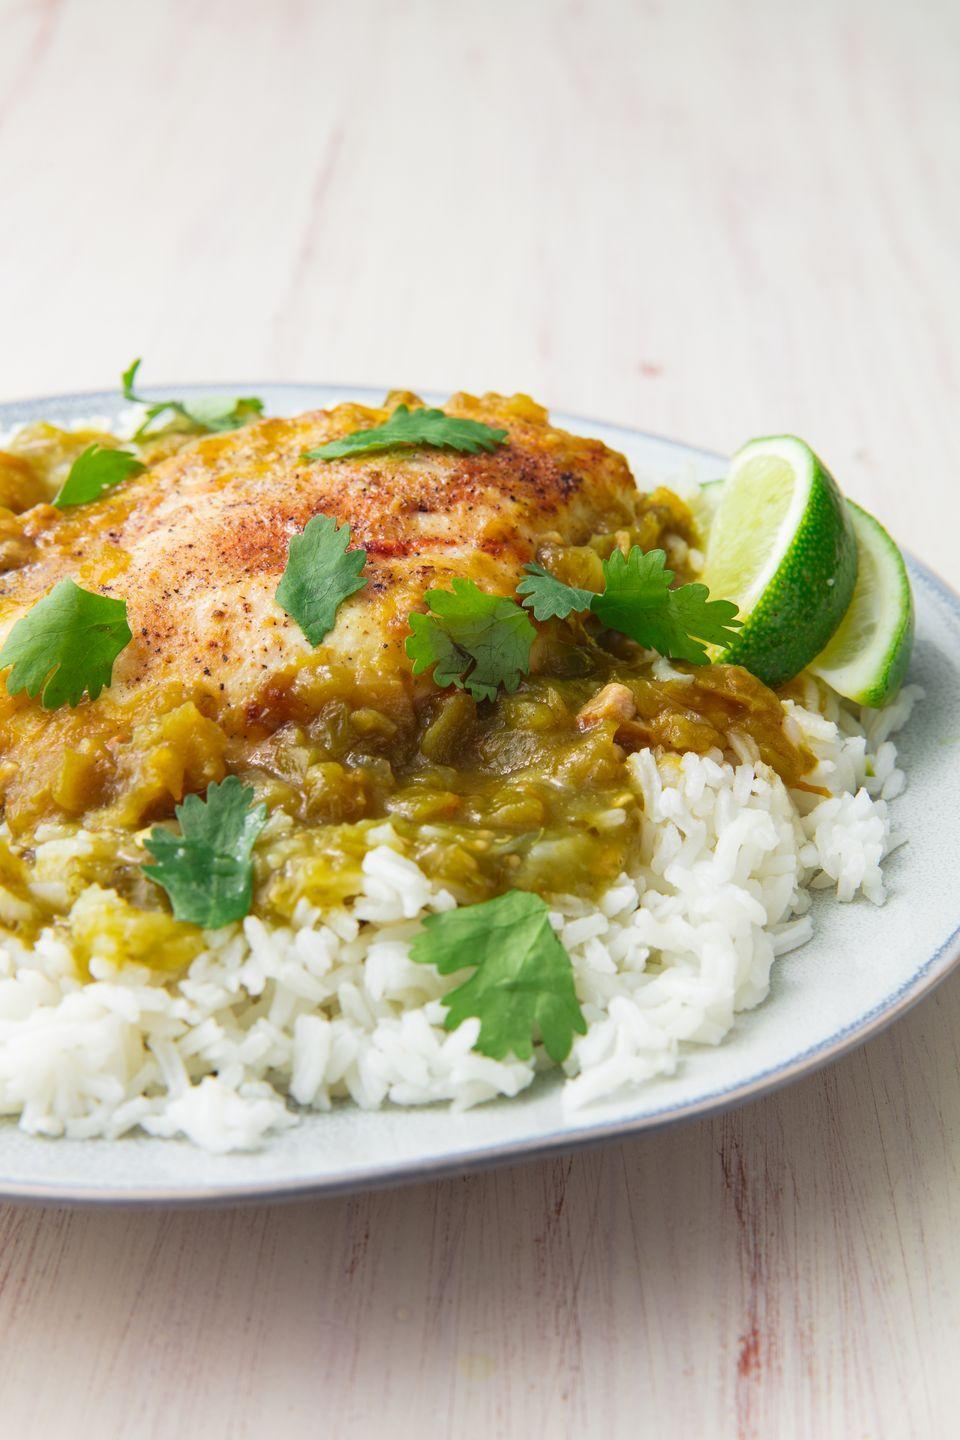 "<p>The perfect weeknight dinner—with a kick.</p><p>Get the recipe from <a href=""https://www.delish.com/cooking/recipe-ideas/recipes/a50766/baked-salsa-verde-chicken-recipe/"" rel=""nofollow noopener"" target=""_blank"" data-ylk=""slk:Delish"" class=""link rapid-noclick-resp"">Delish</a>.</p>"